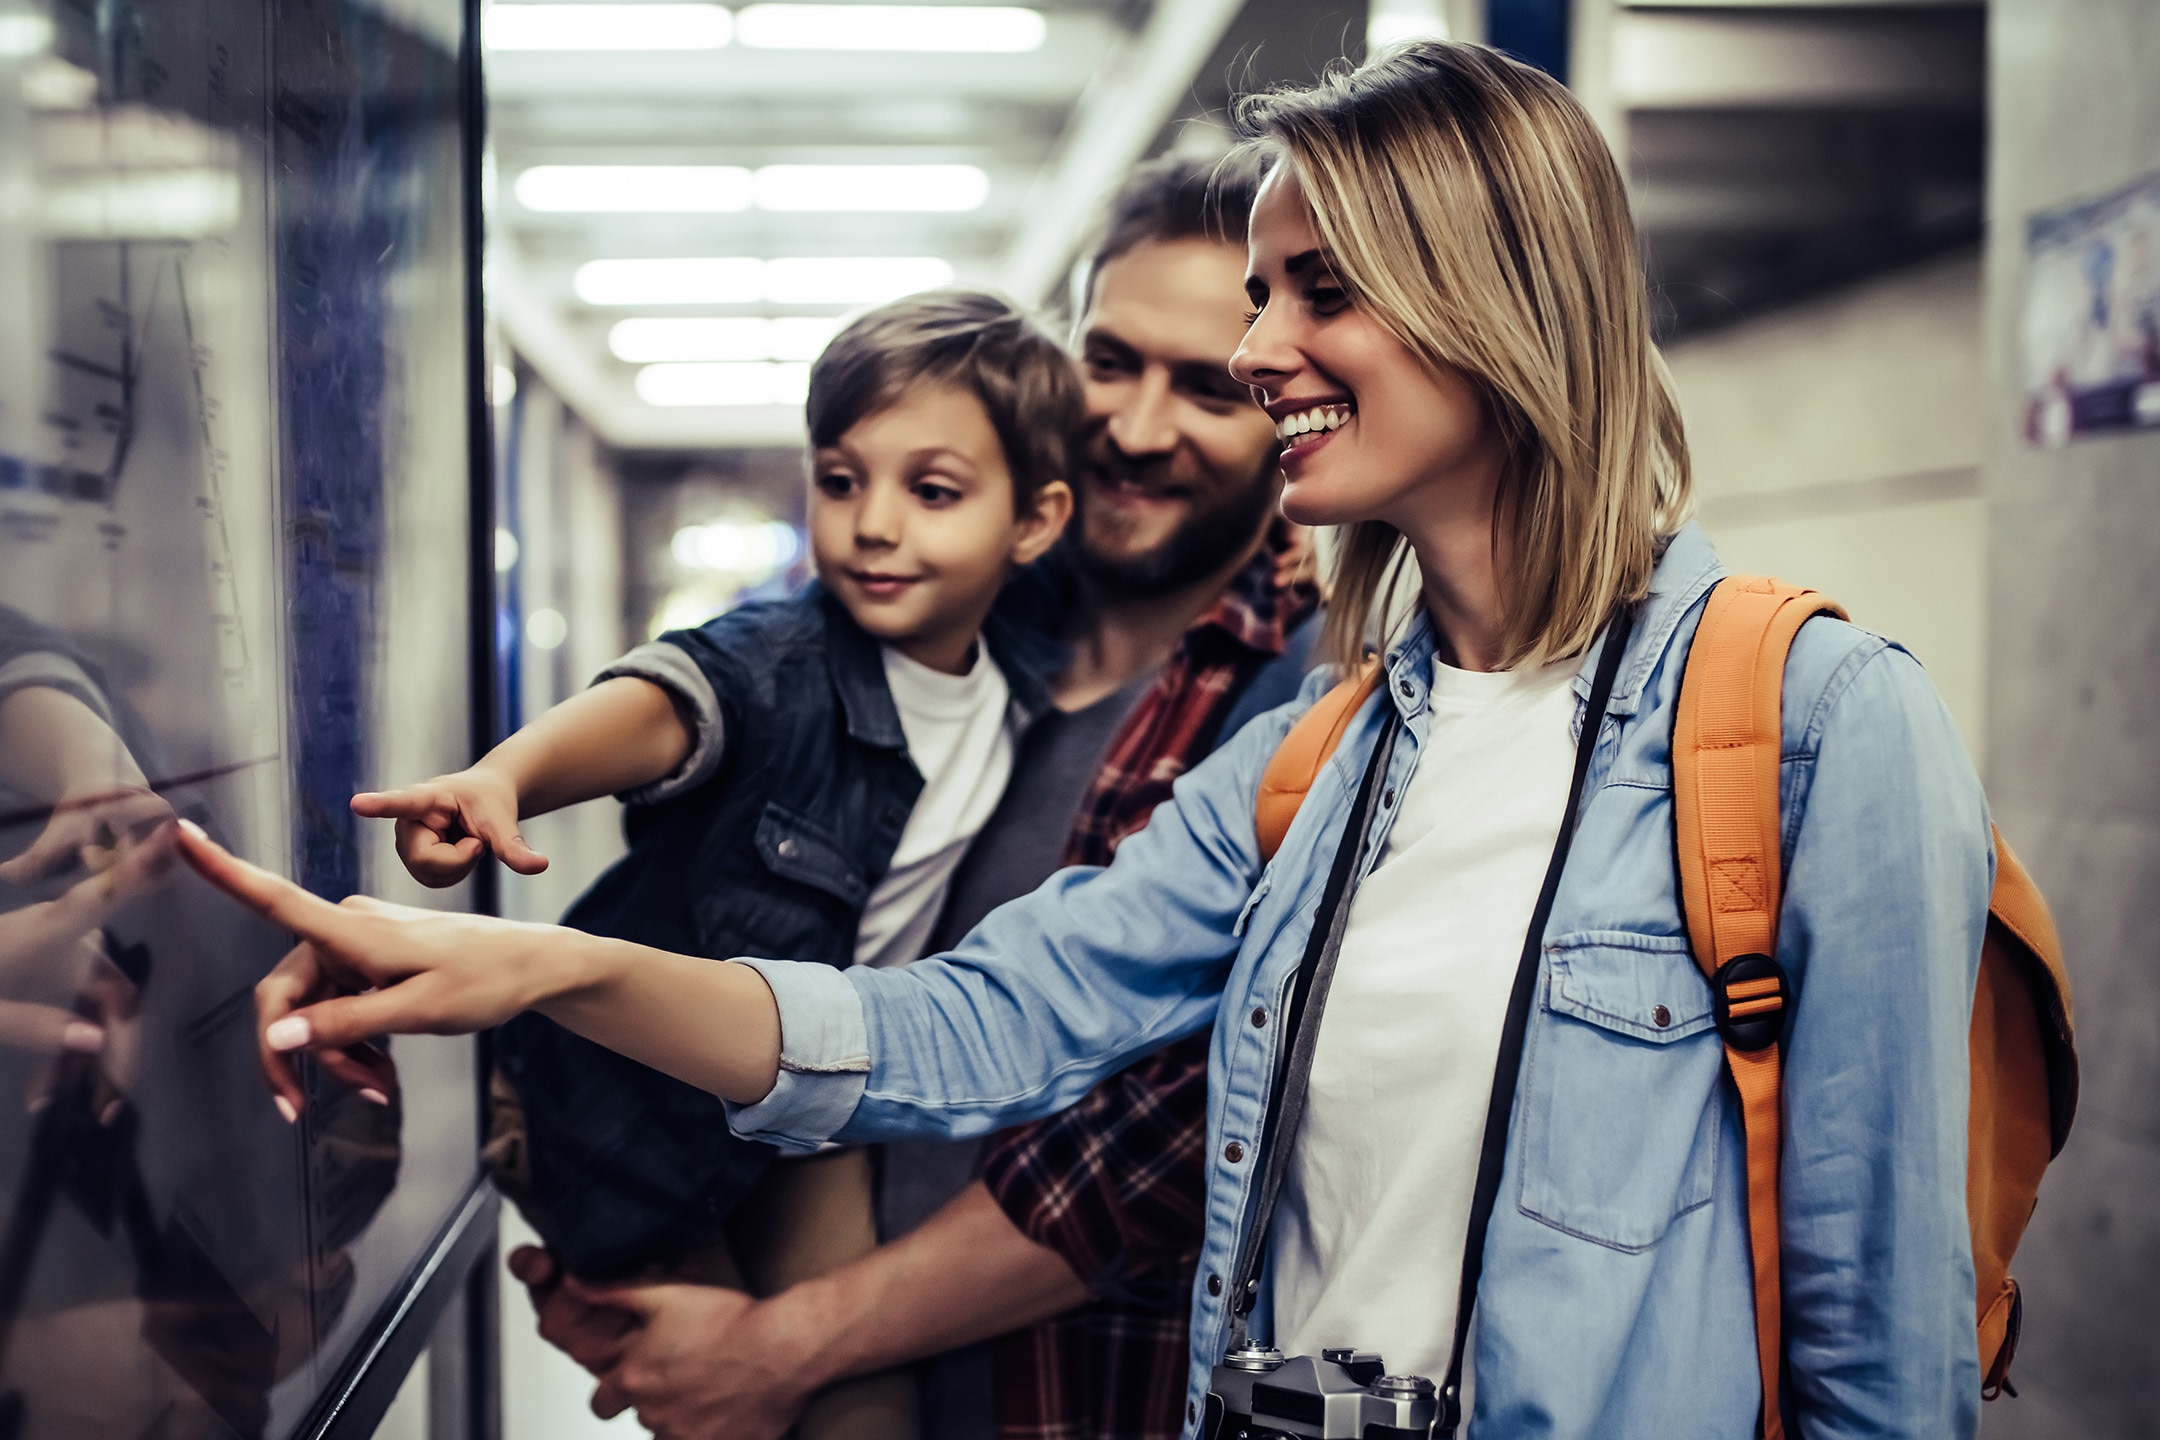 Family of tourists interacting with digital transit map